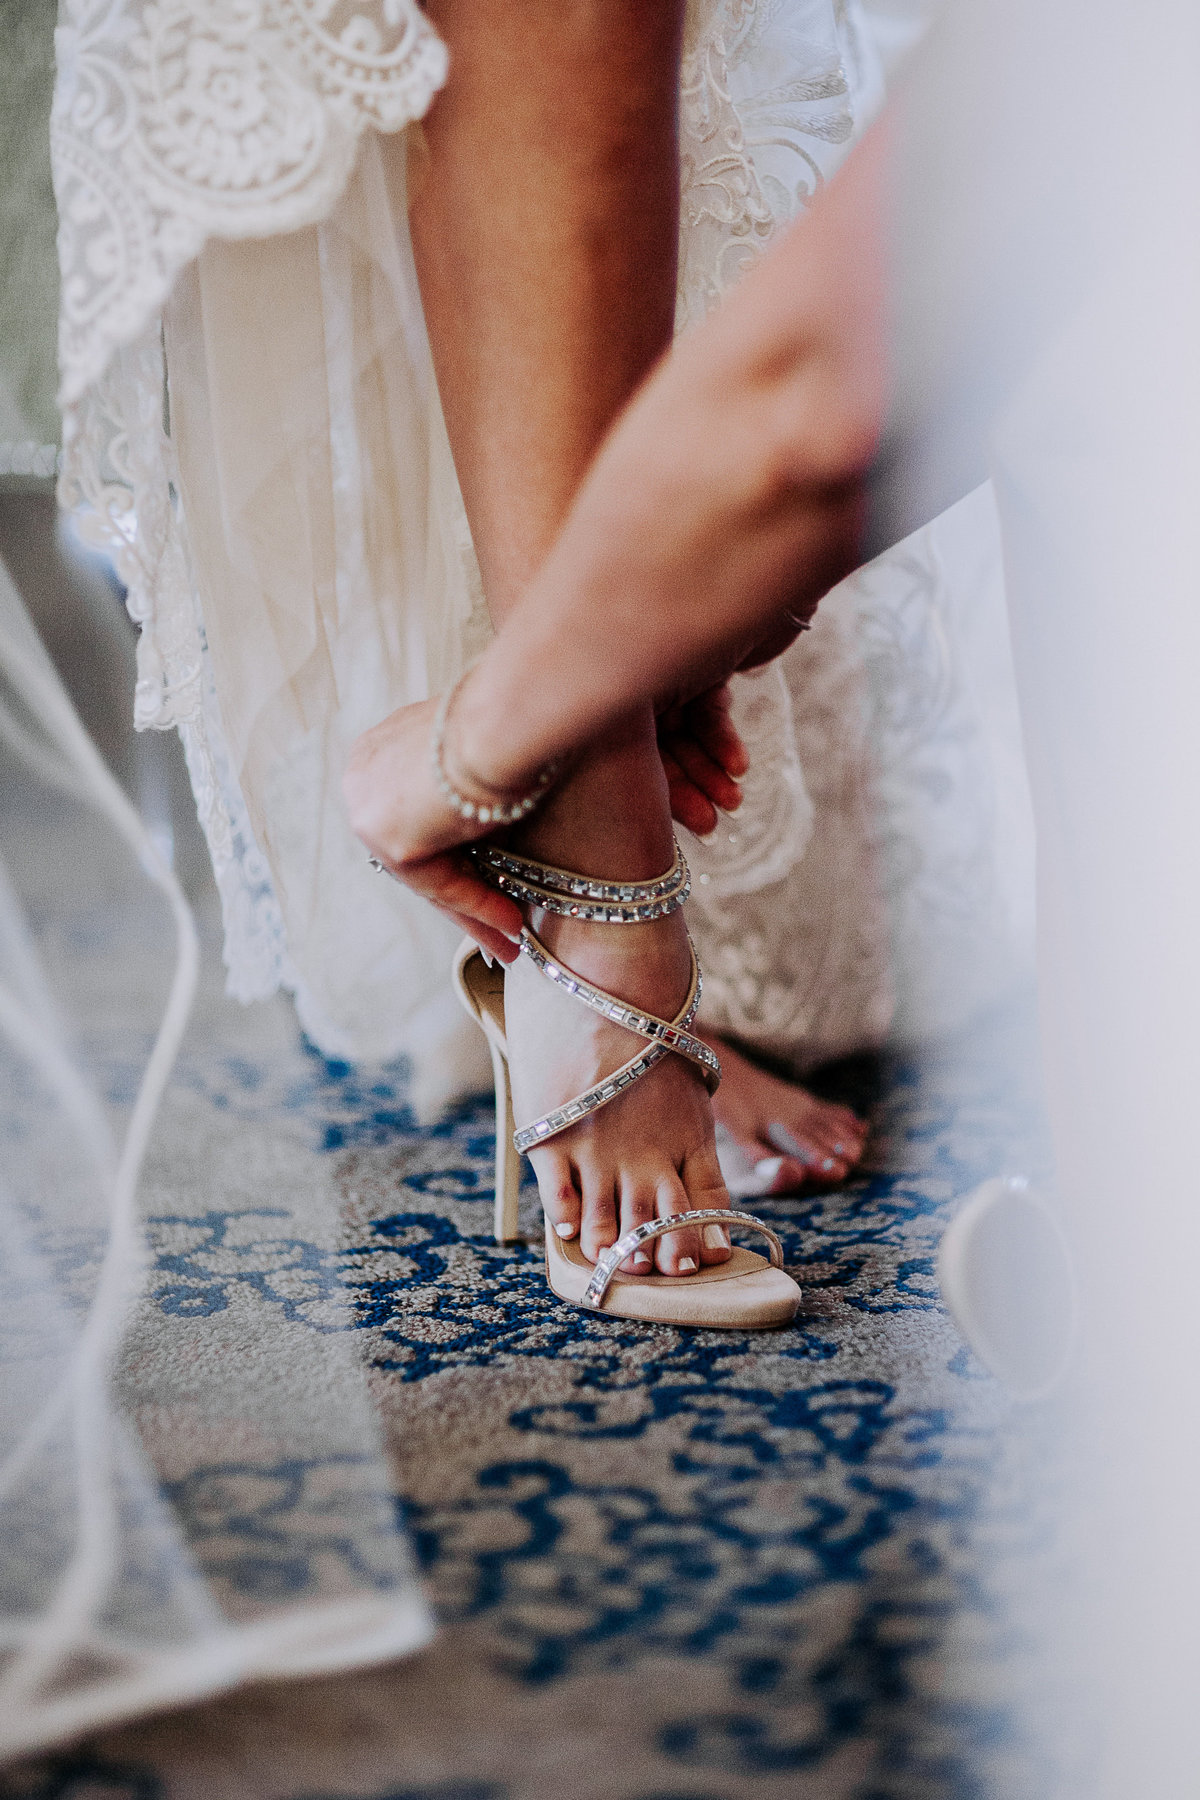 Lake Tahoe wedding photo of bride putting shoes on